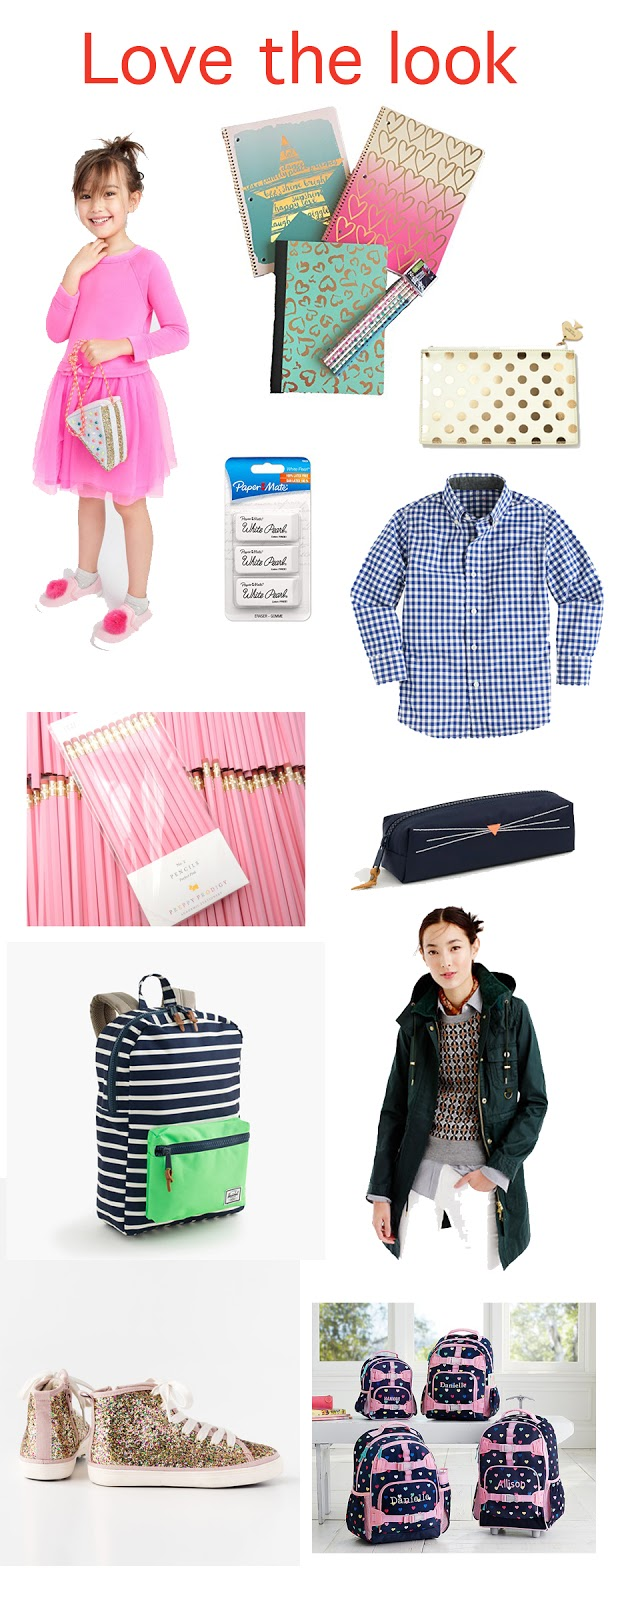 Love the look: Back to School